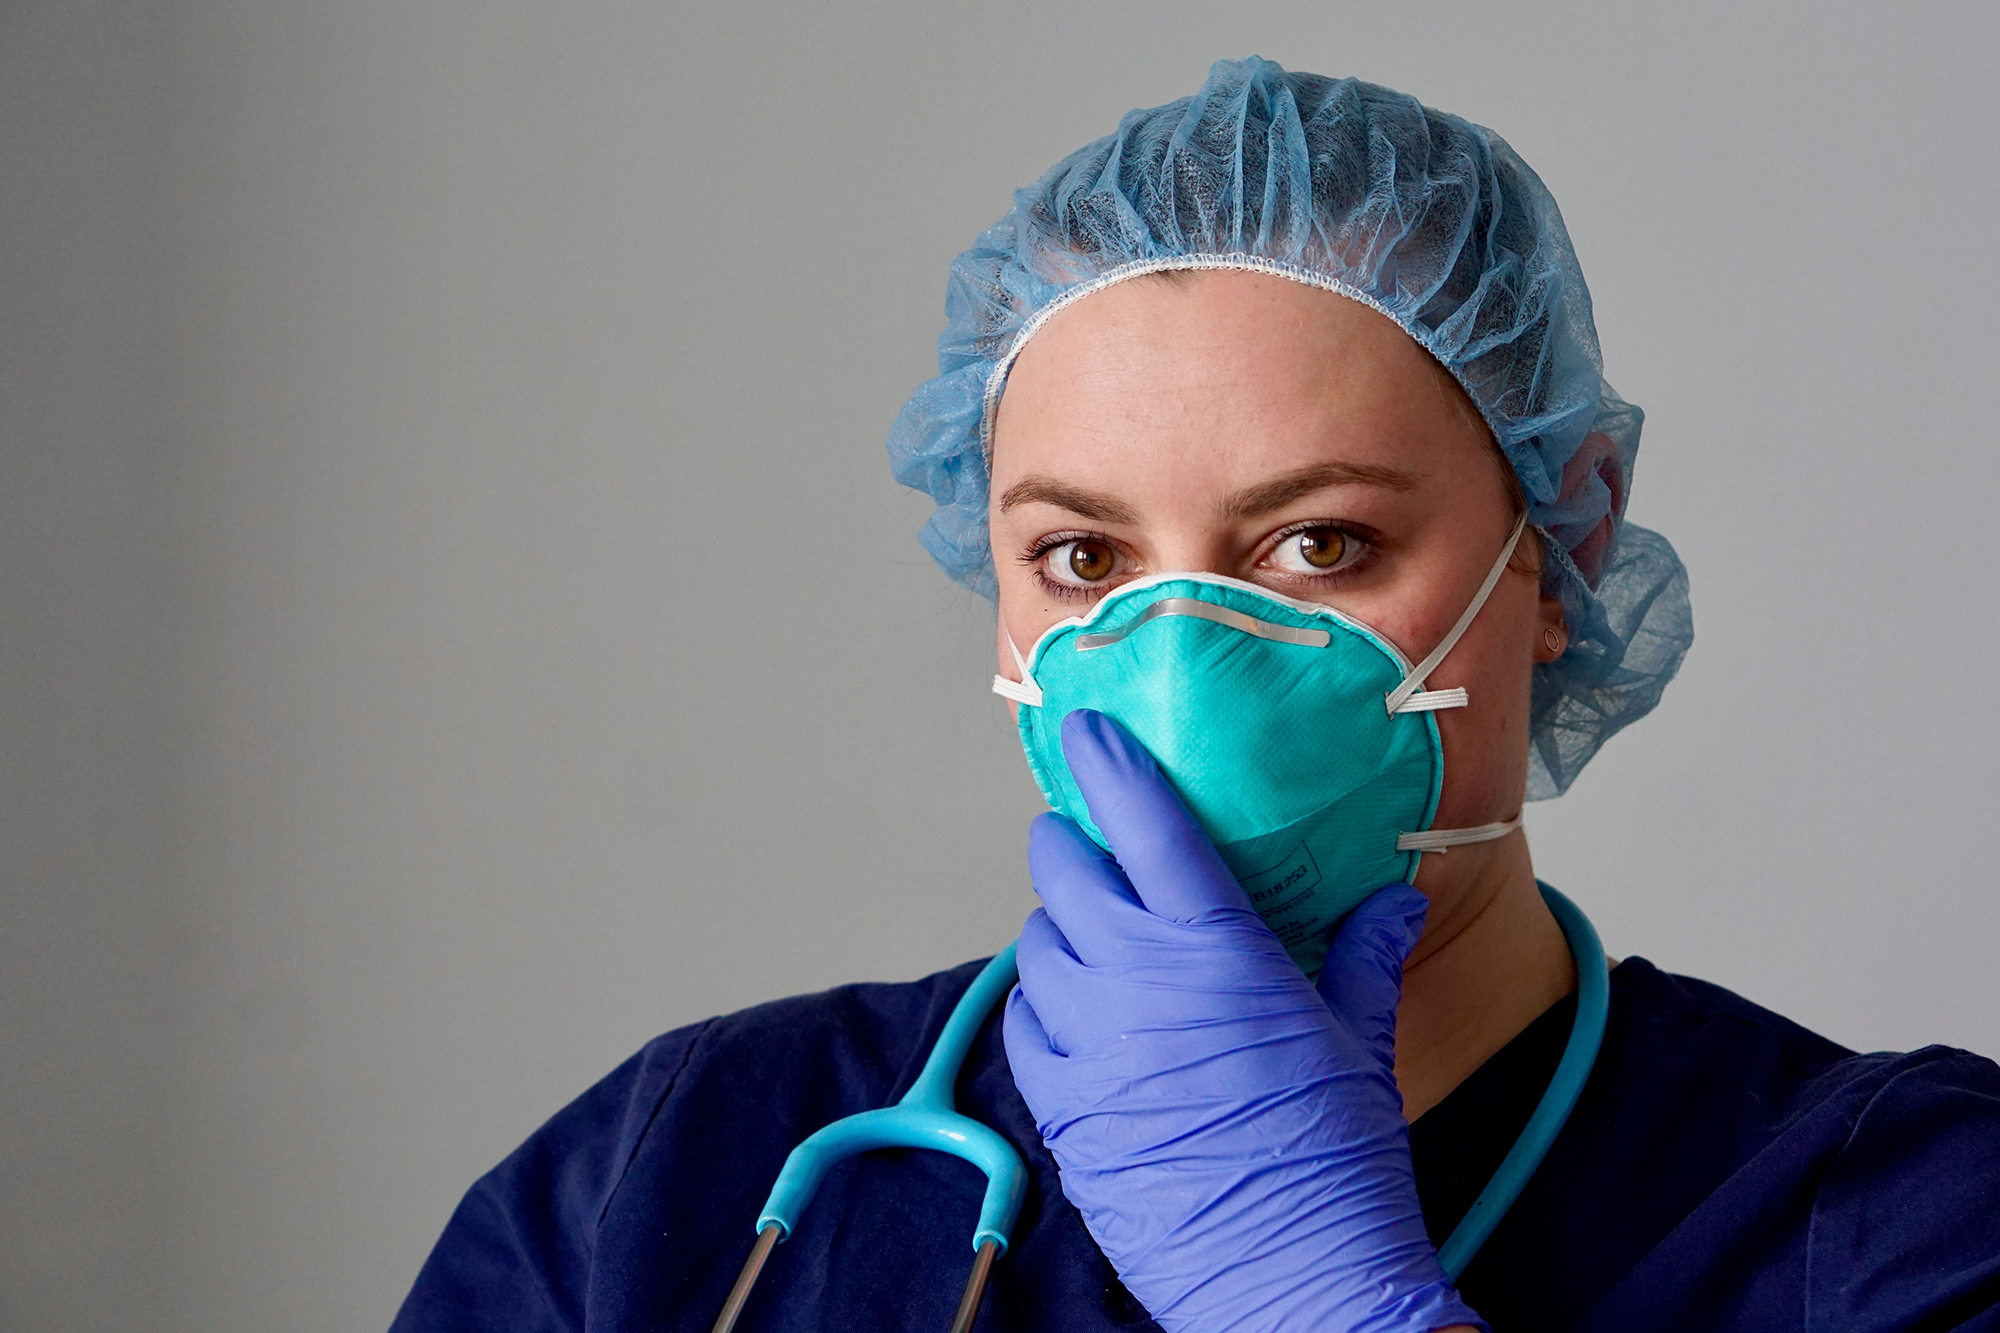 Healthcare worker wearing a respirator mask. (Image: Shutterstock)